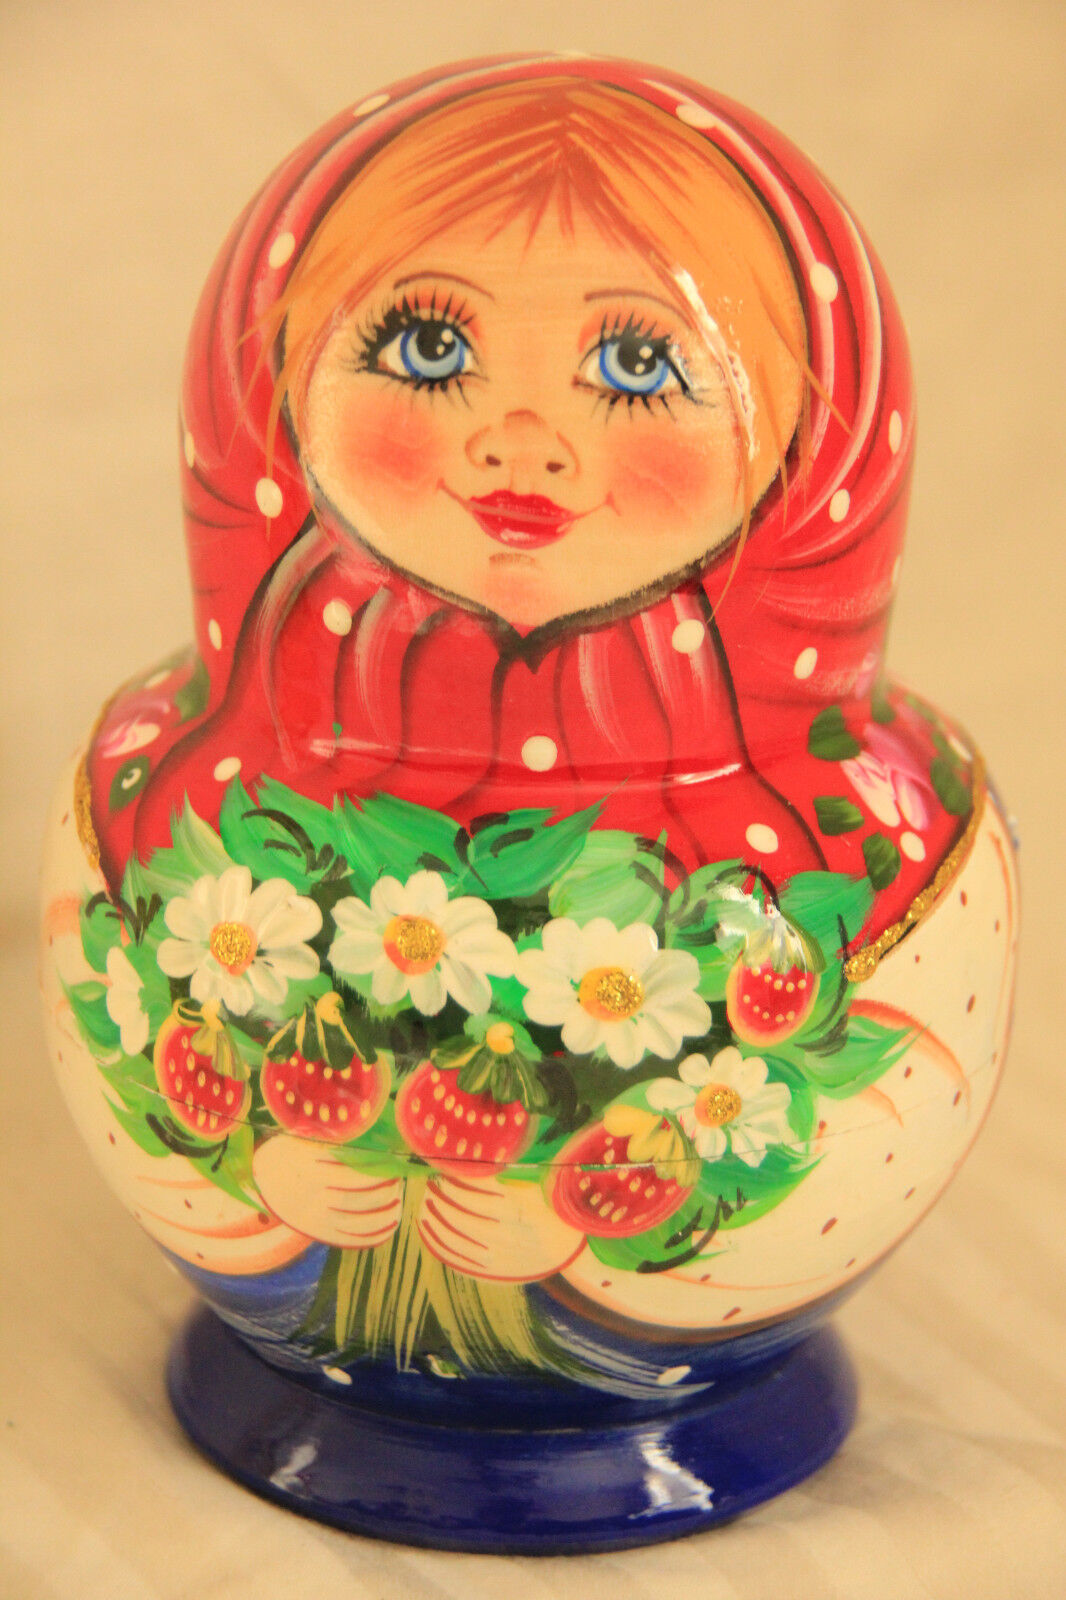 10pc Nesting Doll Russian Woman Matreshka Matryoshka Babushka Hand Paint